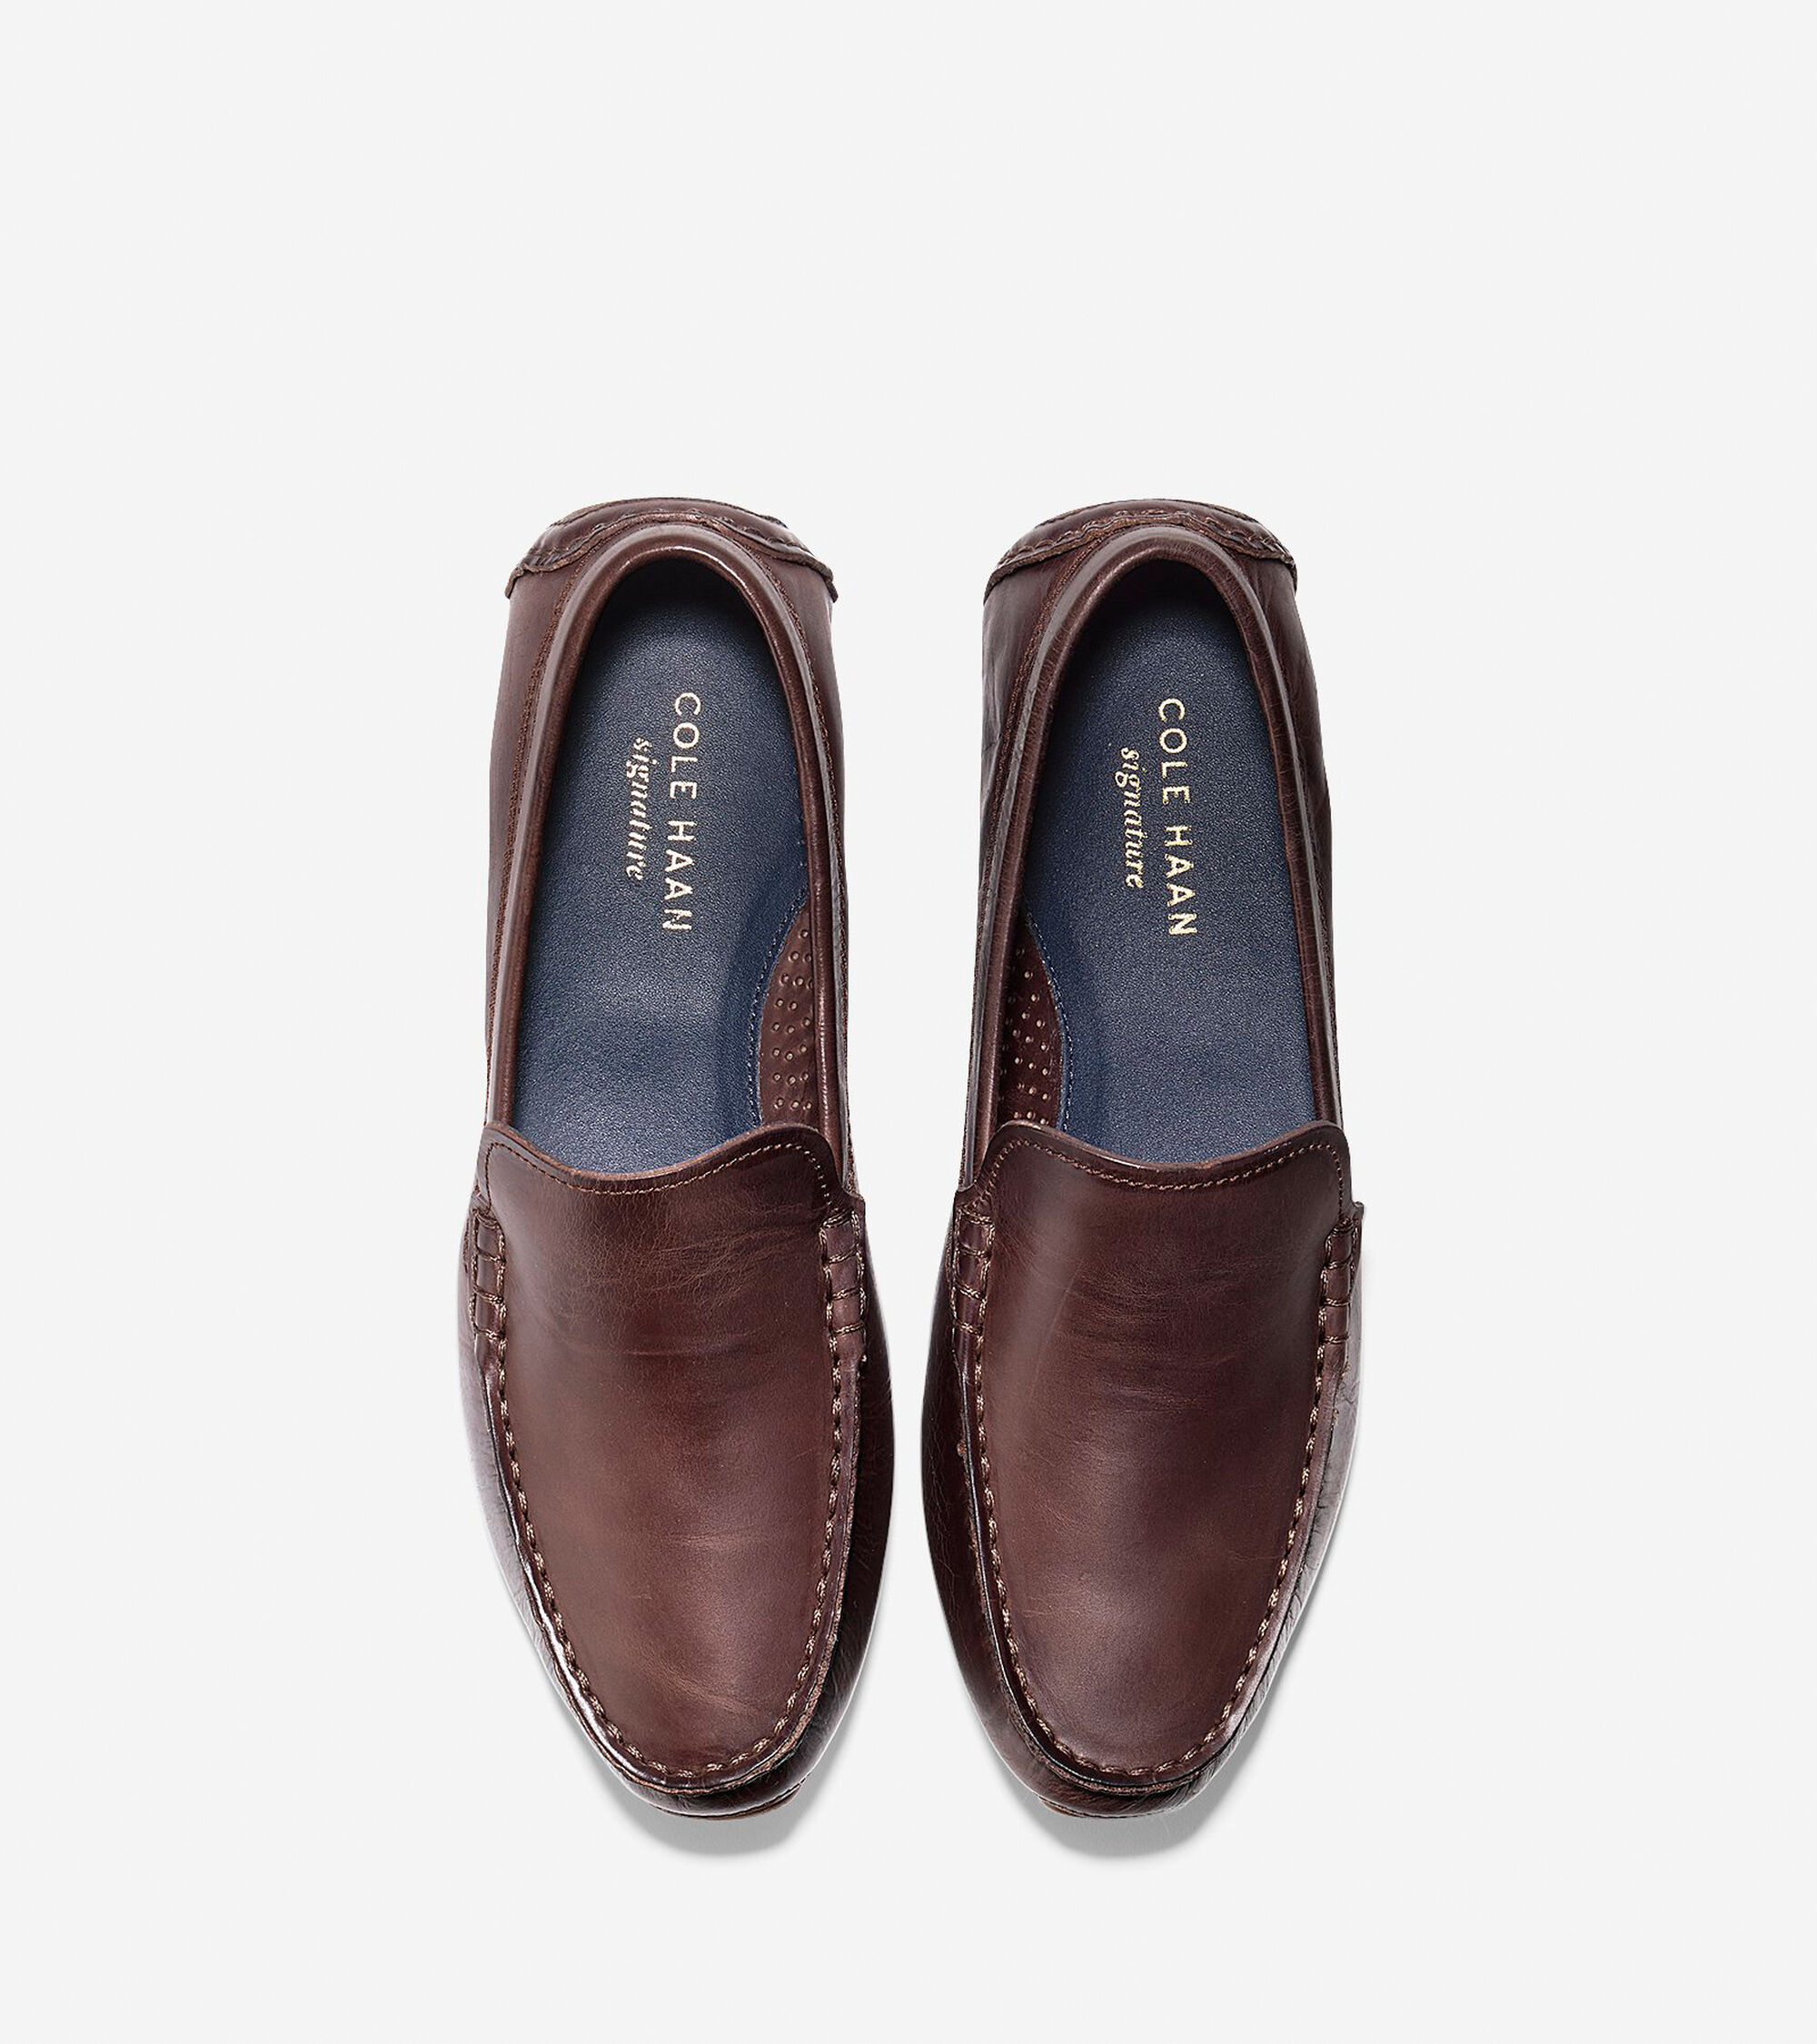 Cole Haan Mens Driving Shoes